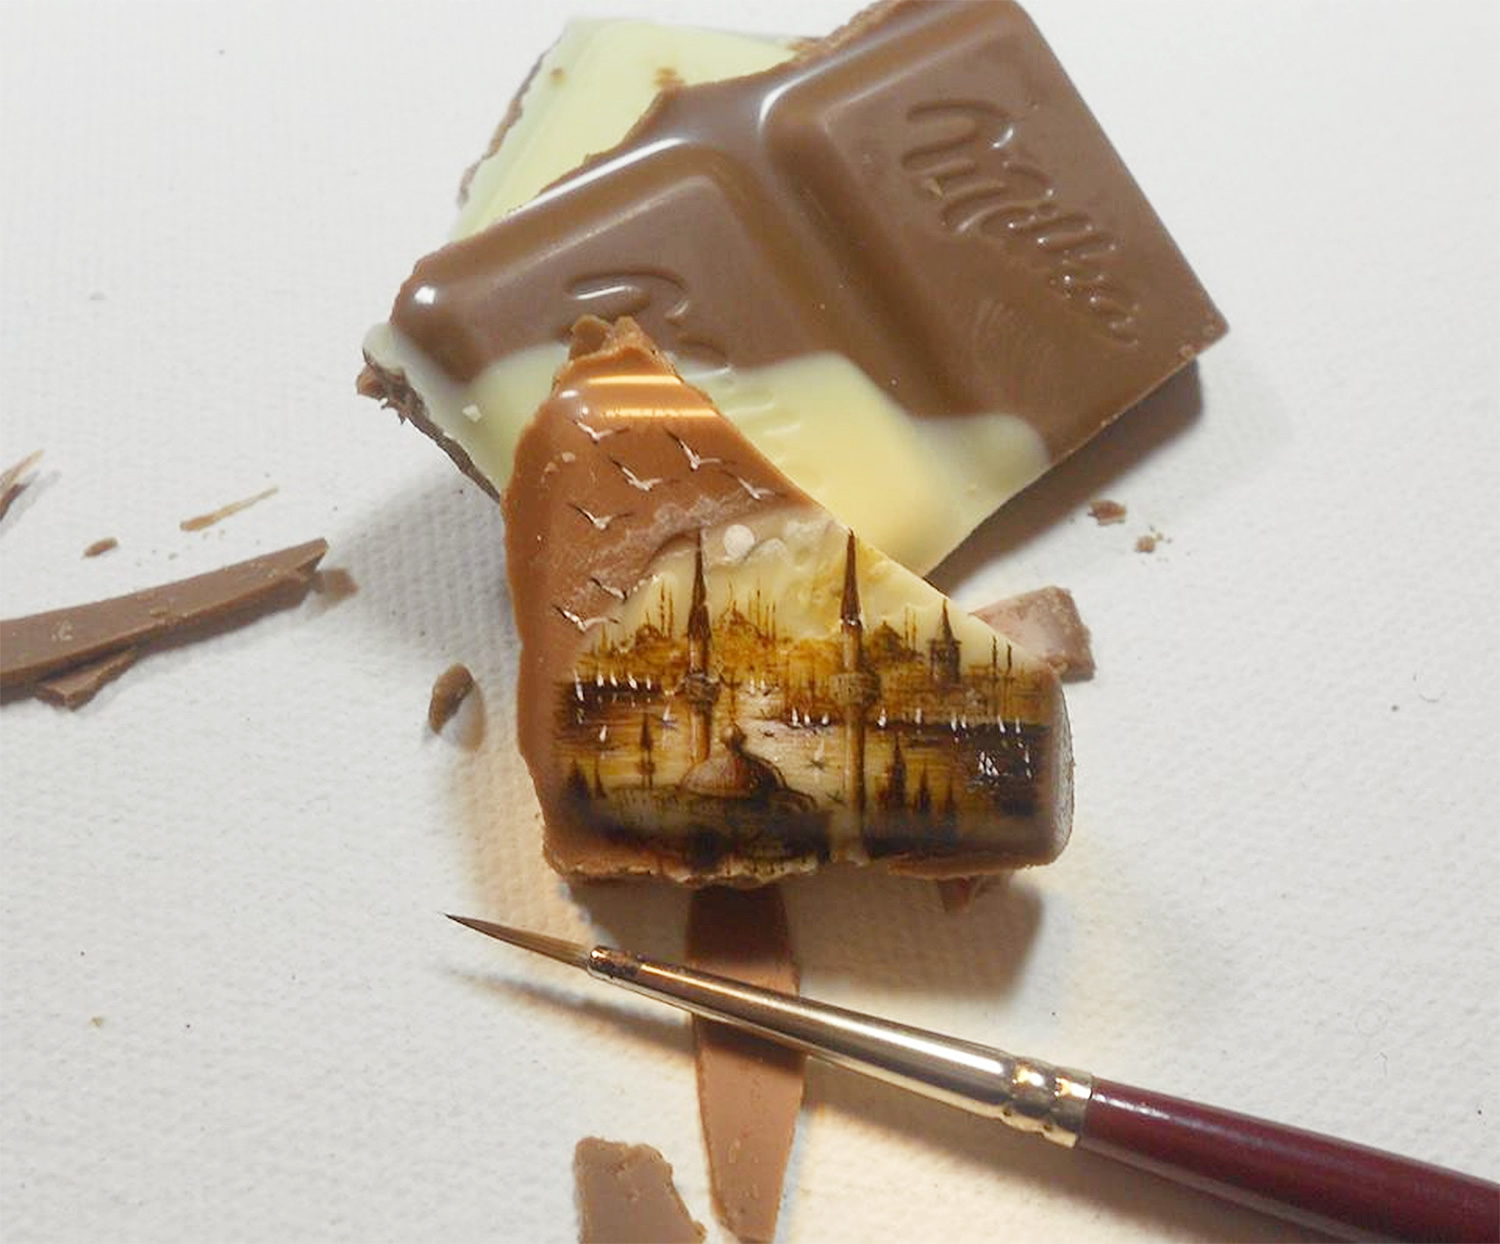 istanbul painted on milka chocolate square